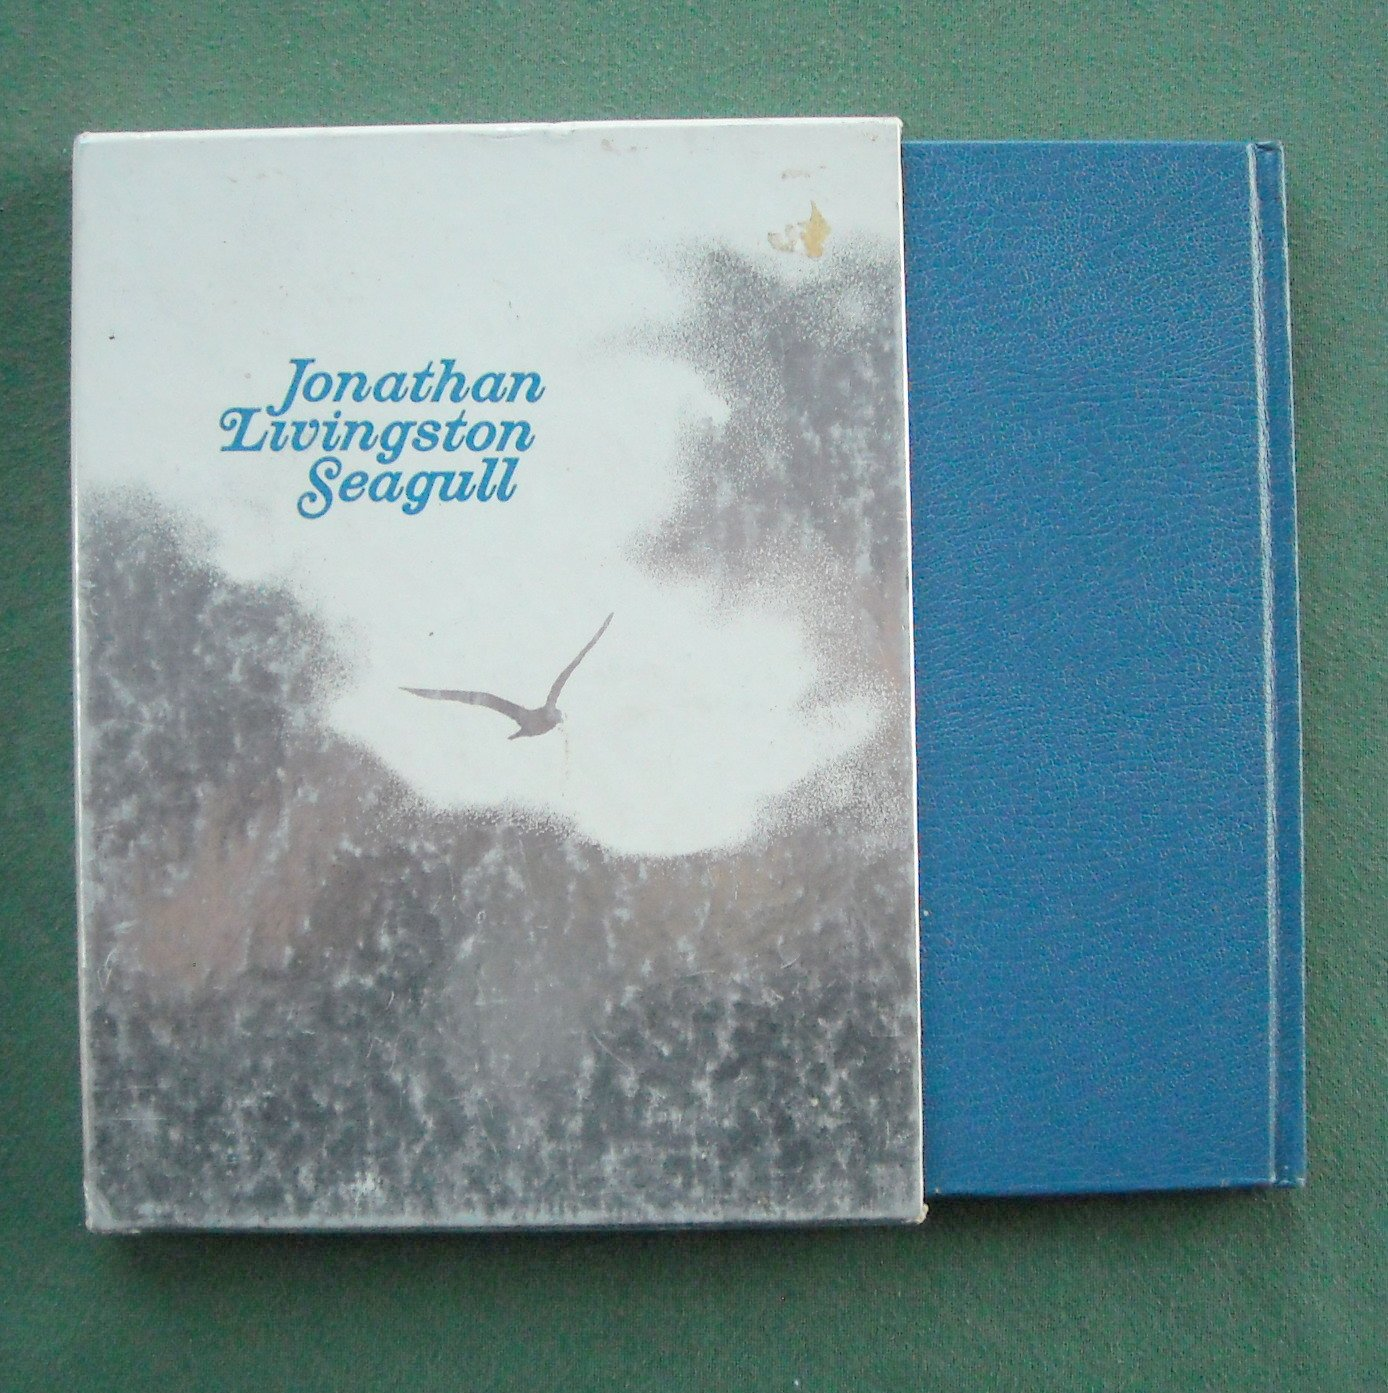 Jonathan Livingston Seagull by Richard Bach hardcover in case